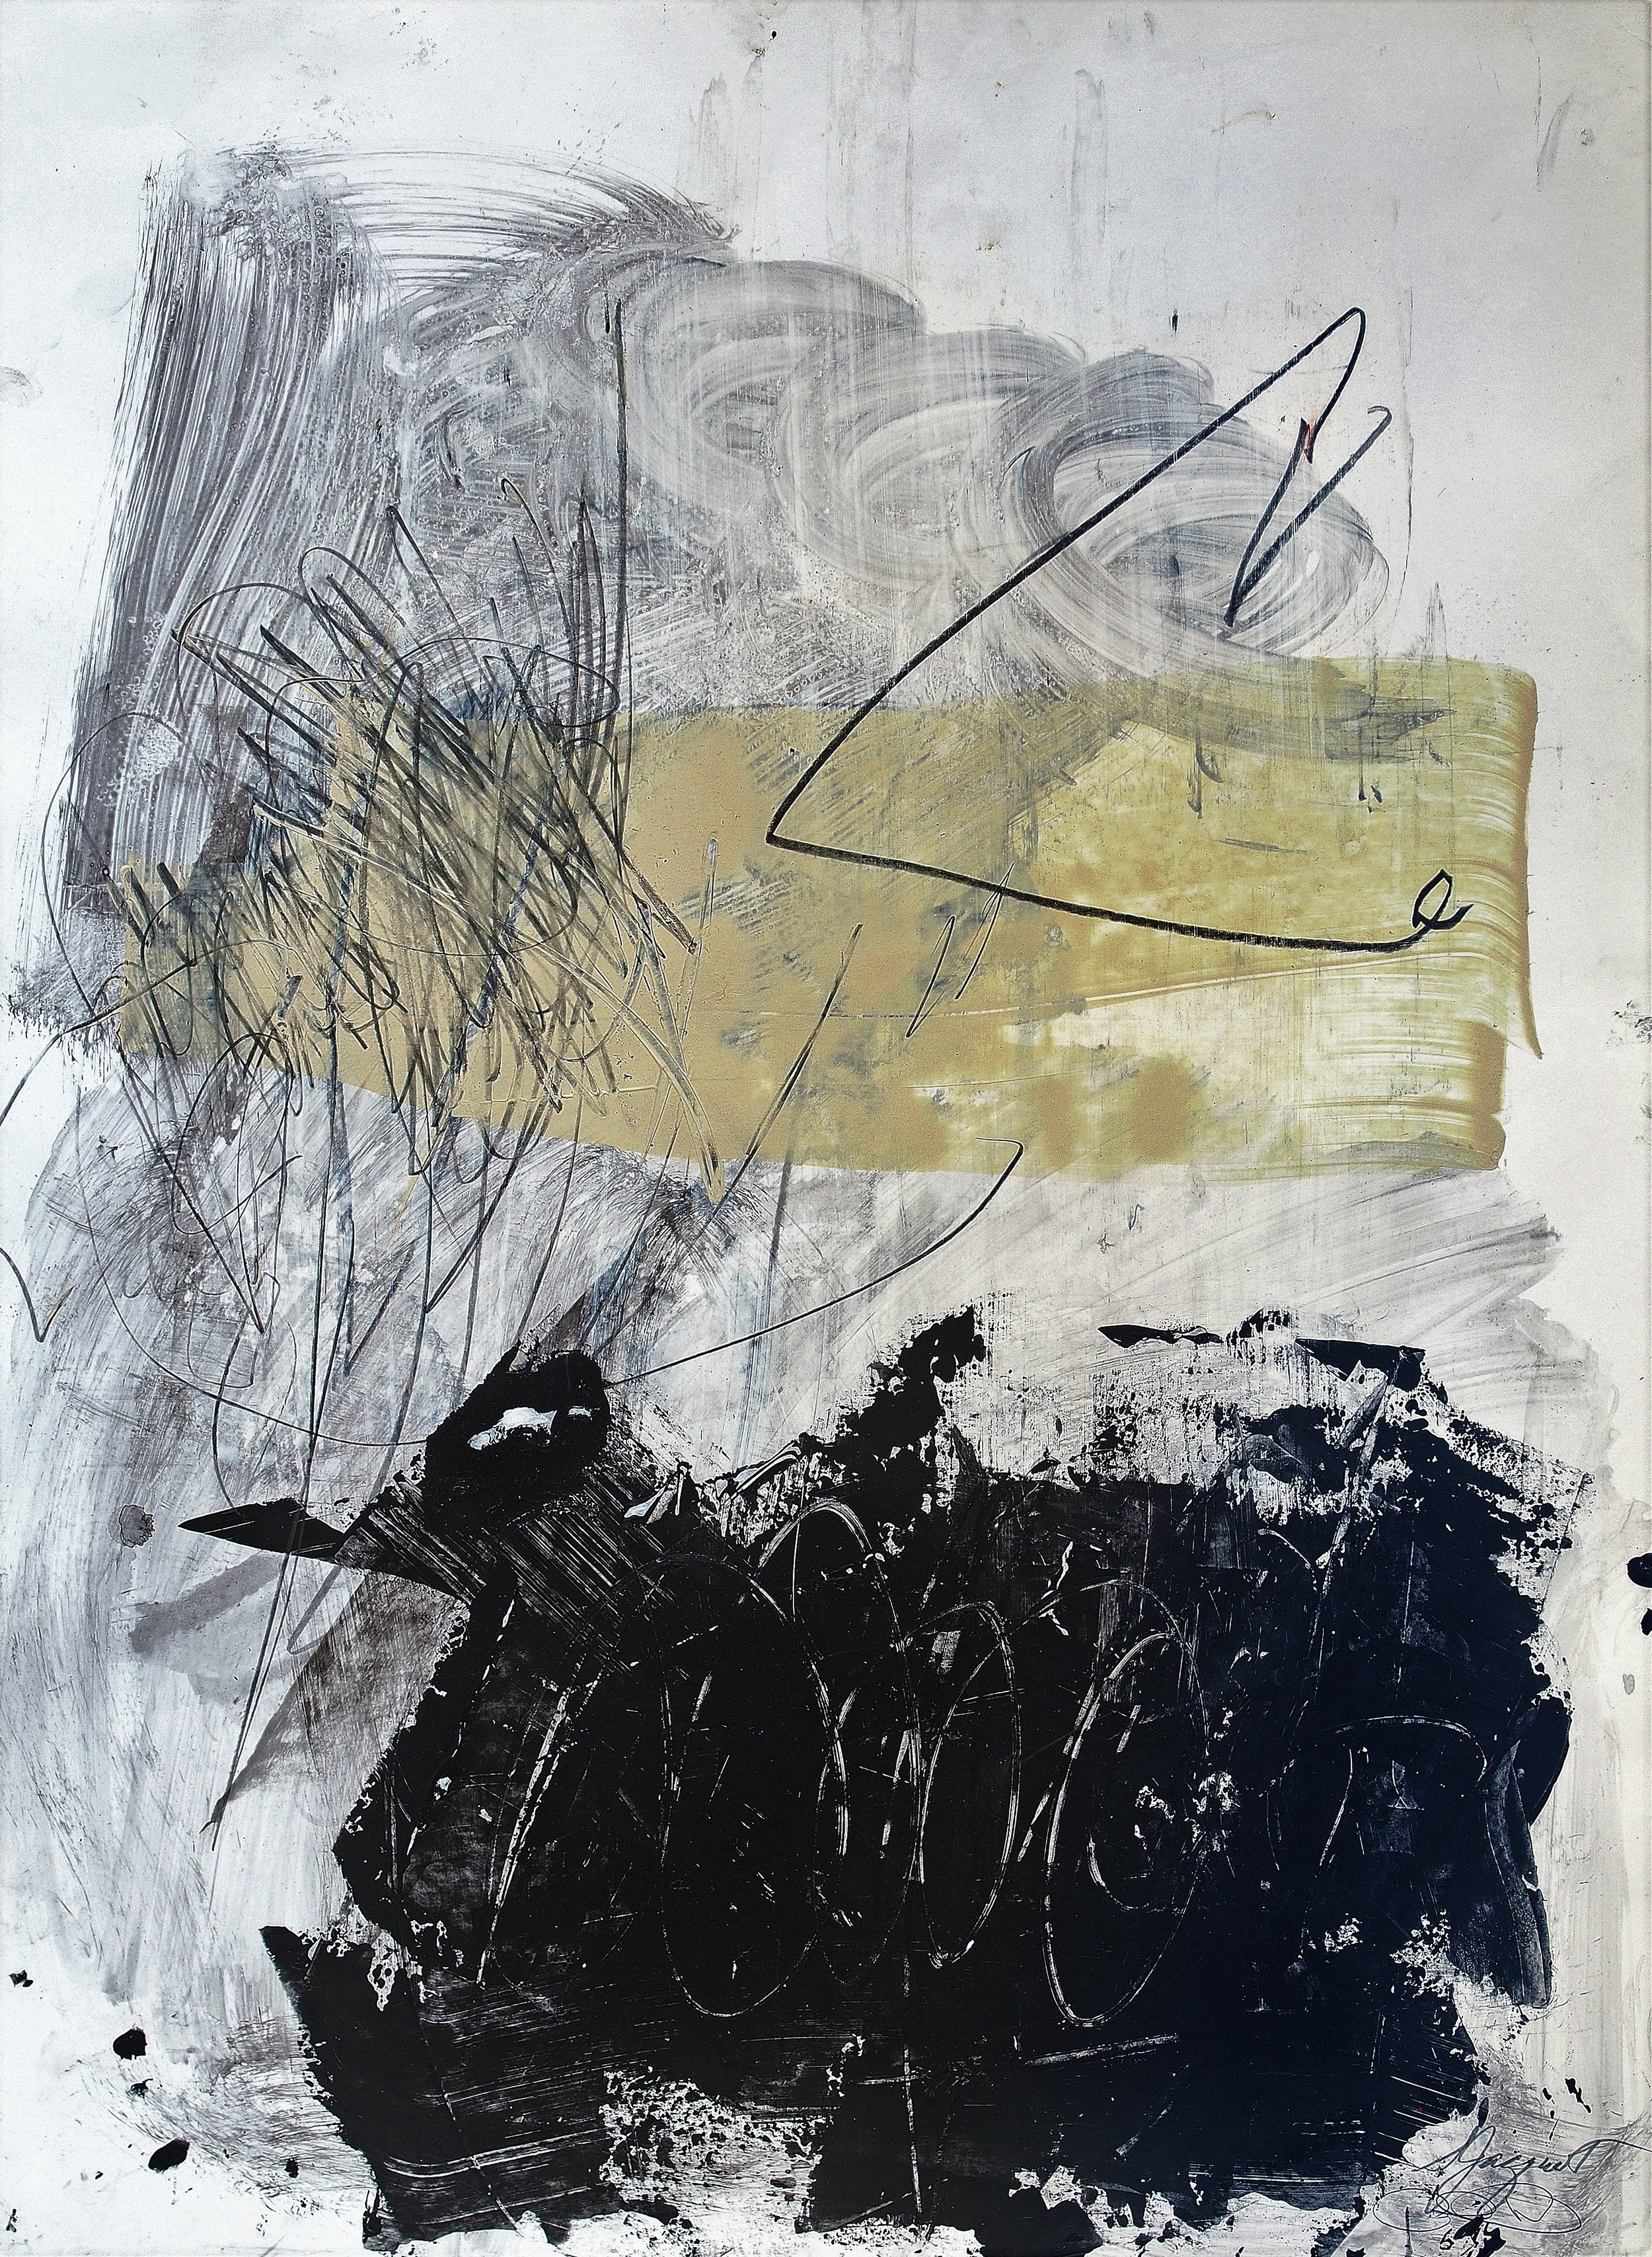 Acrylic and graphite on paper Collaboration with Carl Heyward 16WOP Not For Sale